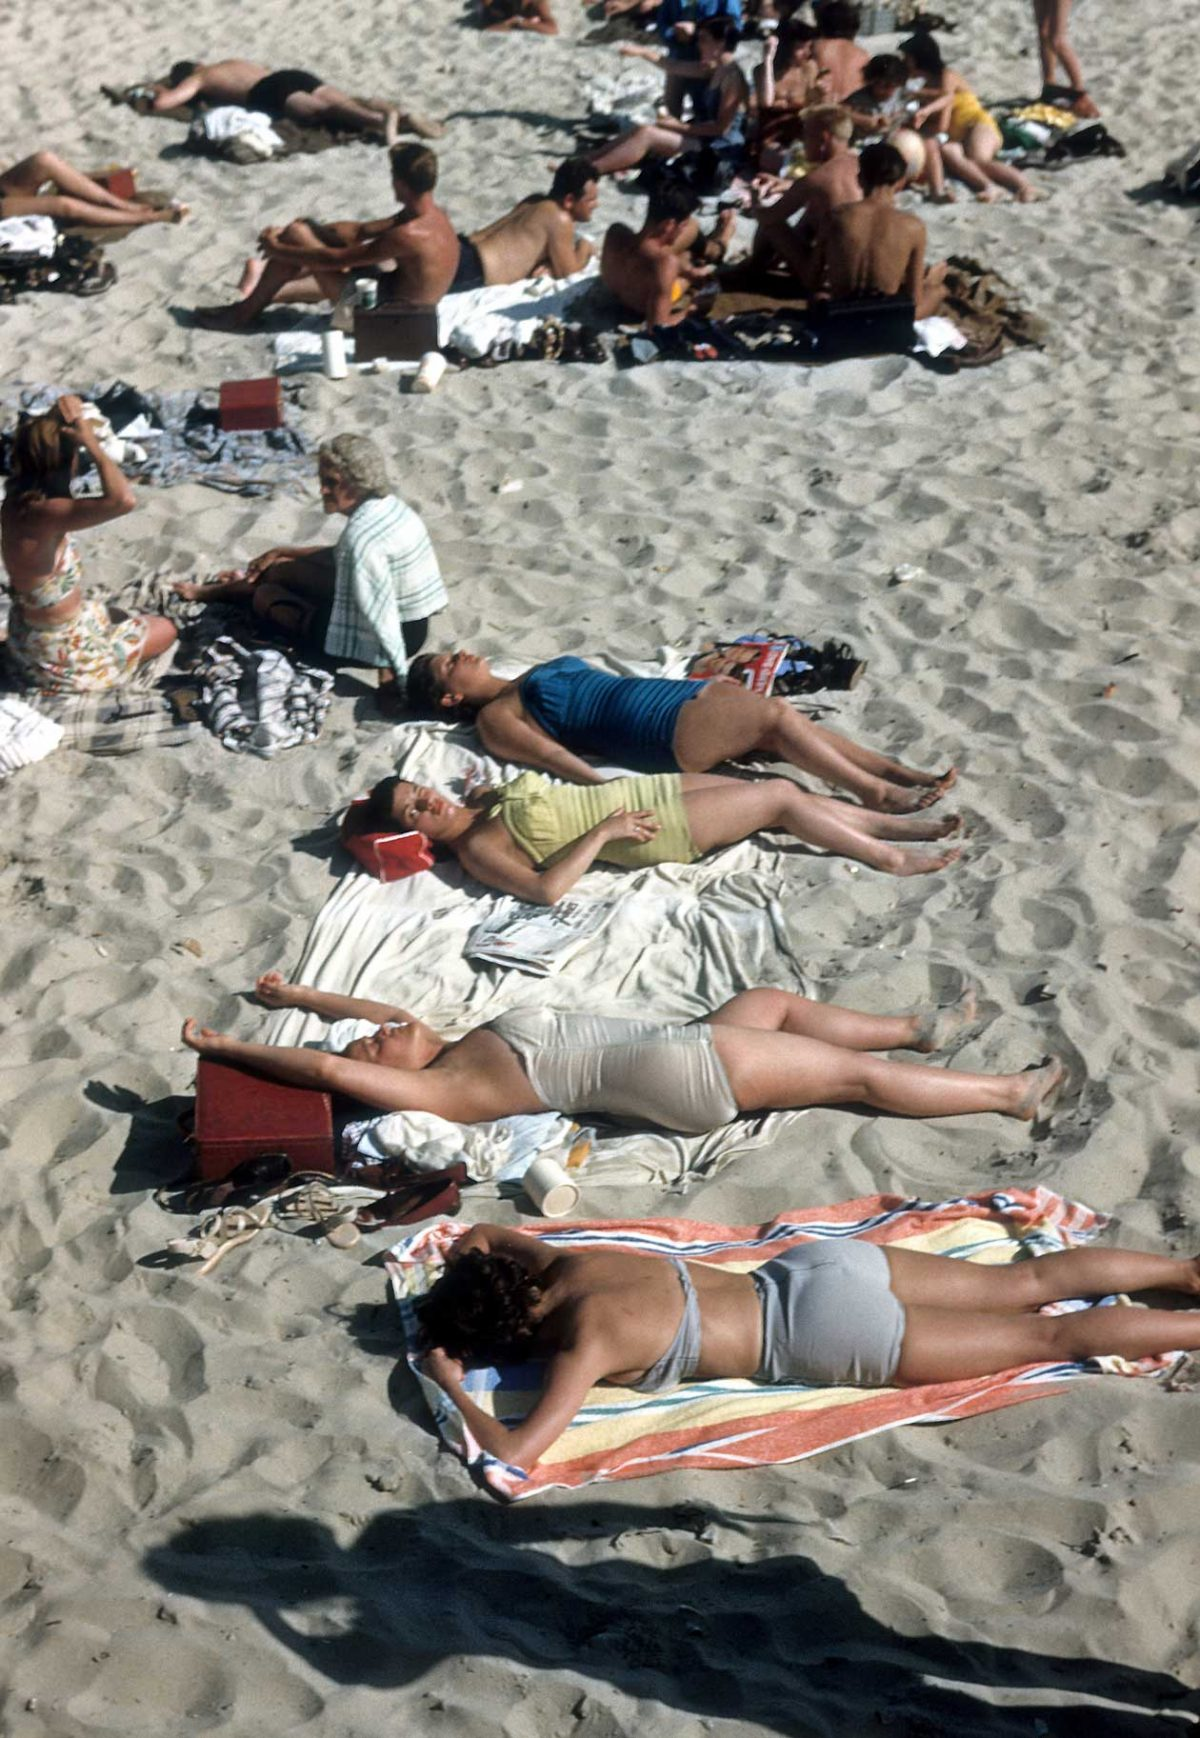 NEW YORK - CIRCA 1948: Sunbathers on Coney Island beach circa 1948 in Brooklyn, New York City, New York. (Photo by Sherman Oaks Antique Mall/Getty Images)